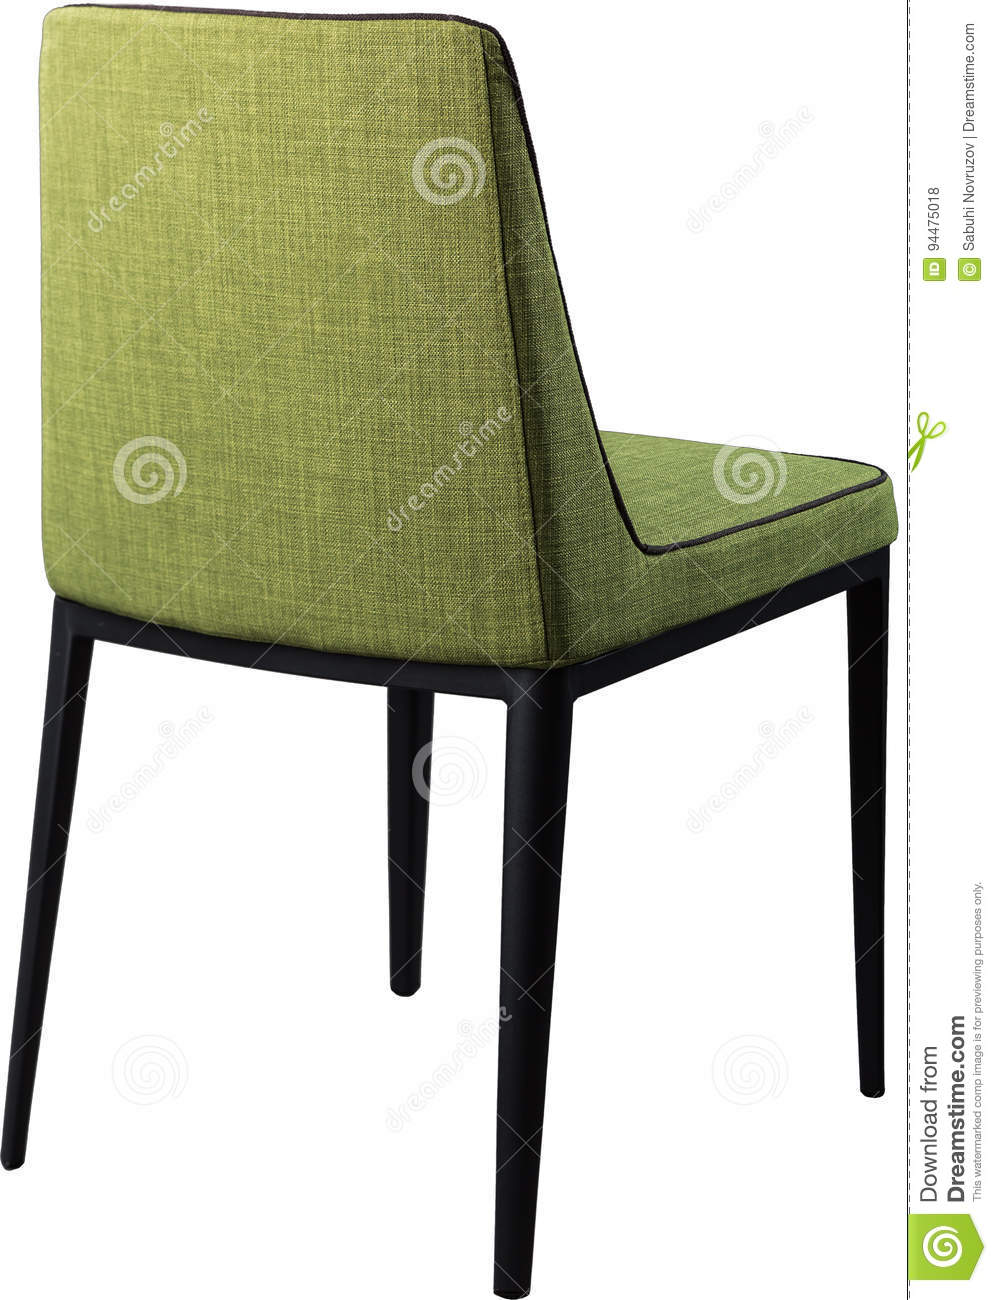 Brilliant Designer Green Dining Chair On Black Metal Legs Modern Soft Caraccident5 Cool Chair Designs And Ideas Caraccident5Info